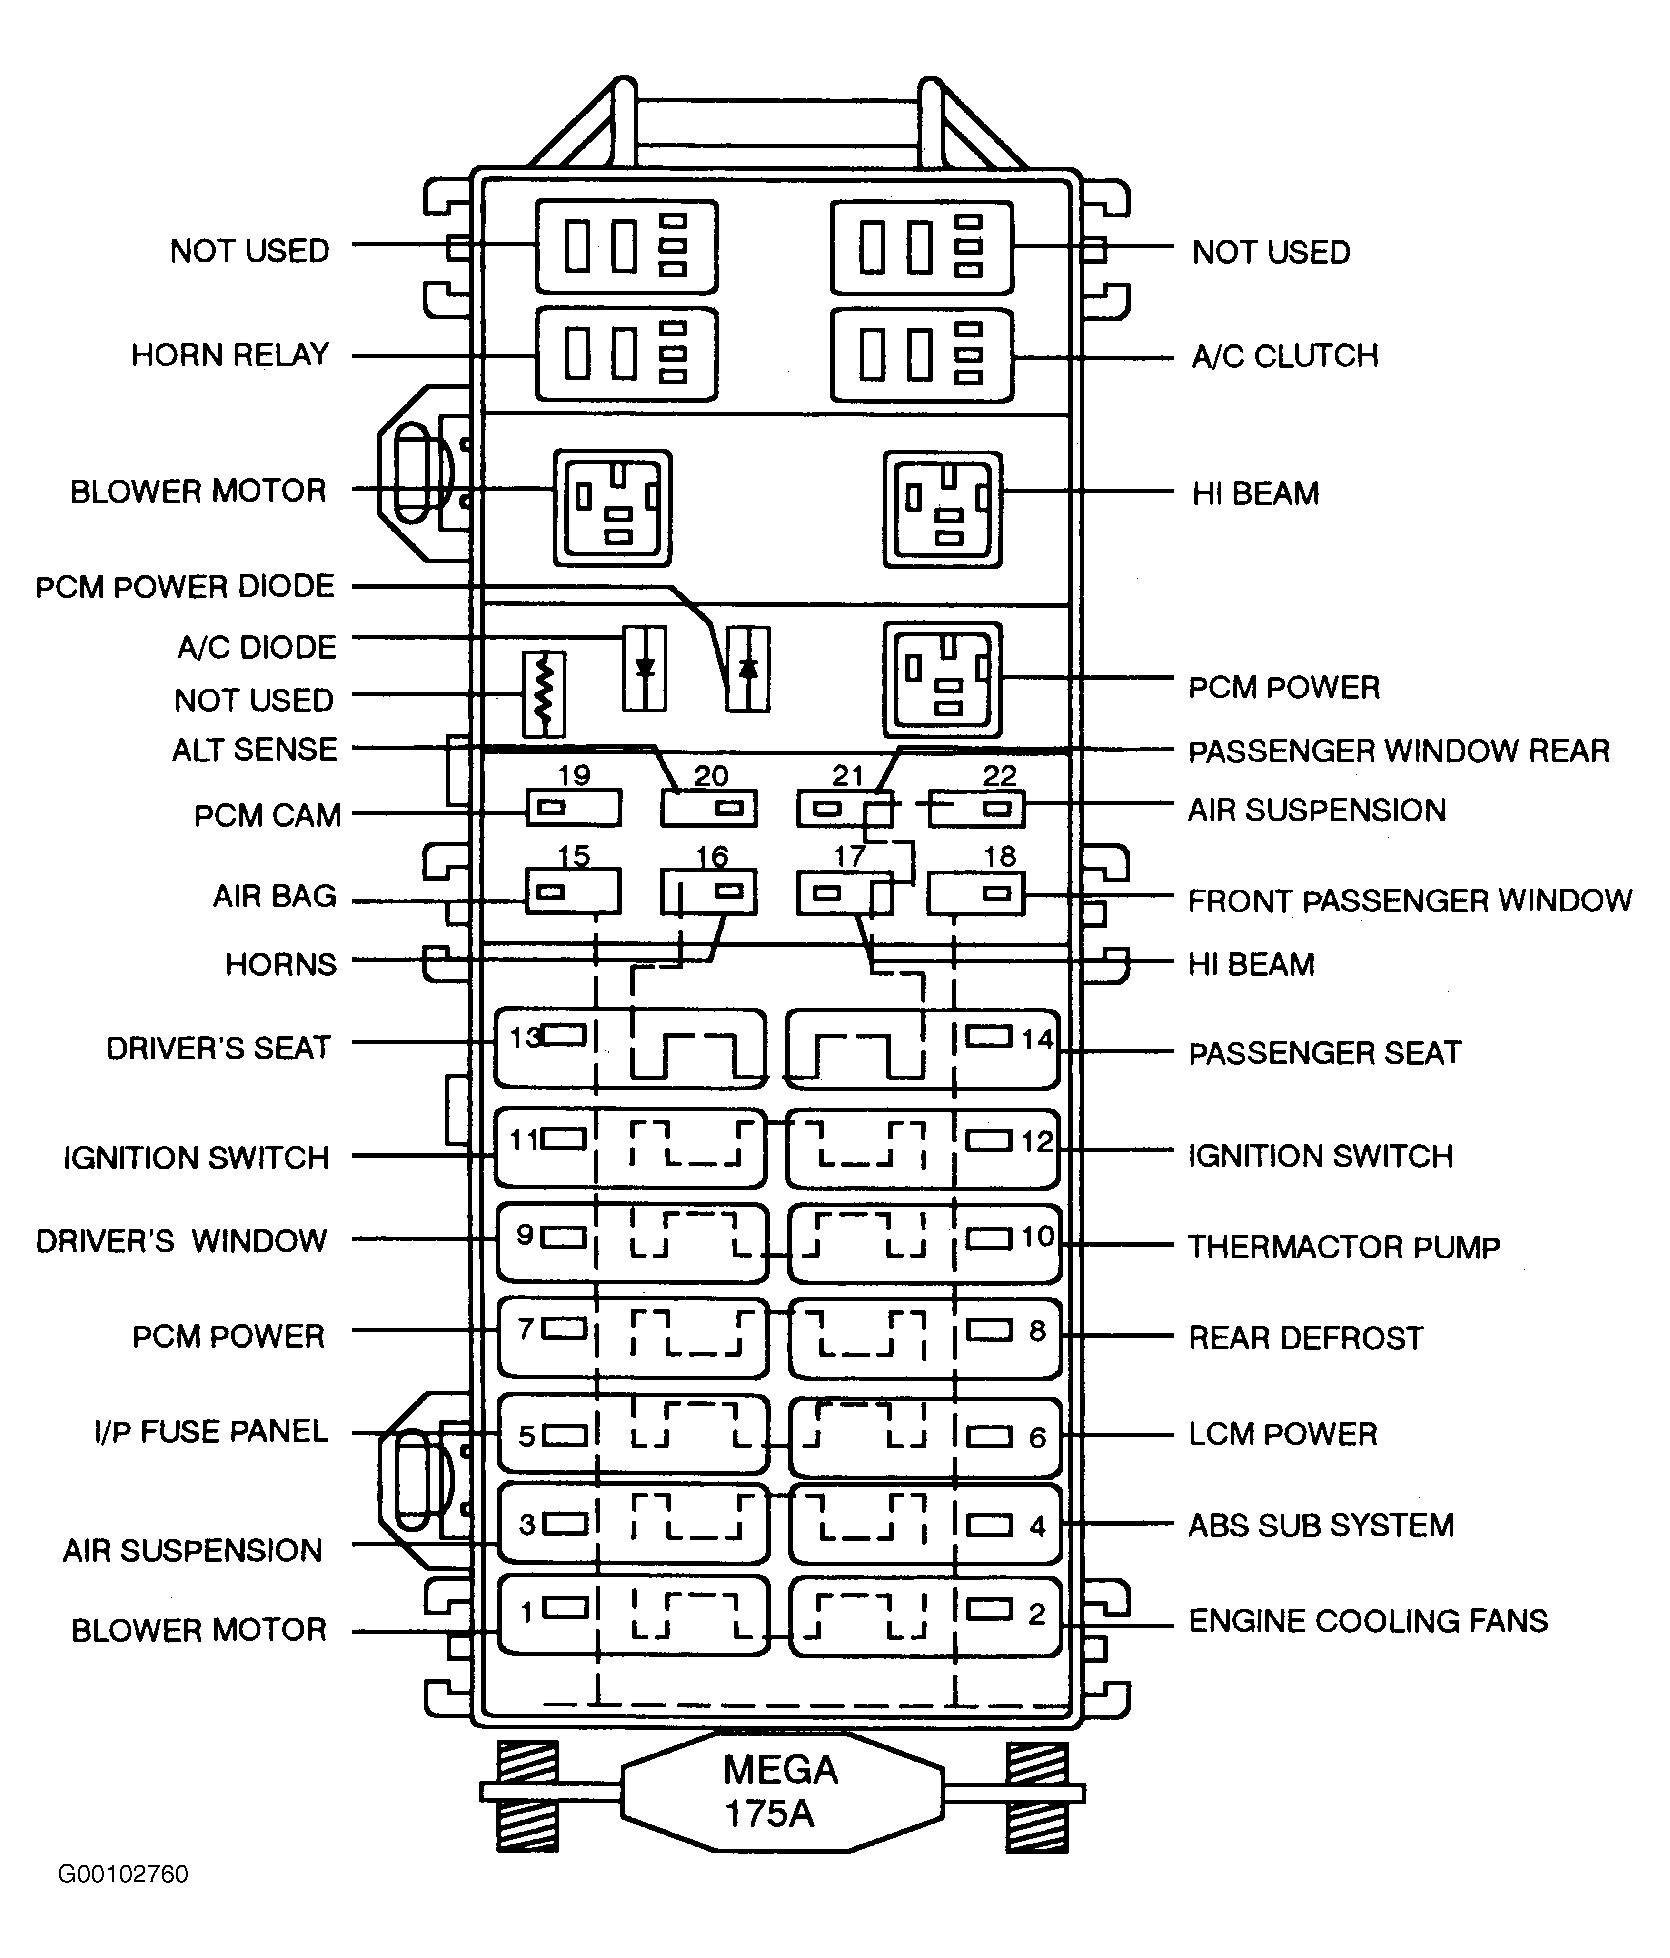 DIAGRAM] Fuse Box Diagram For 1986 Lincoln Town Car FULL Version HD Quality Town  Car - K98SCHEMATIC4849.BEAUTYWELL.ITk98schematic4849.beautywell.it